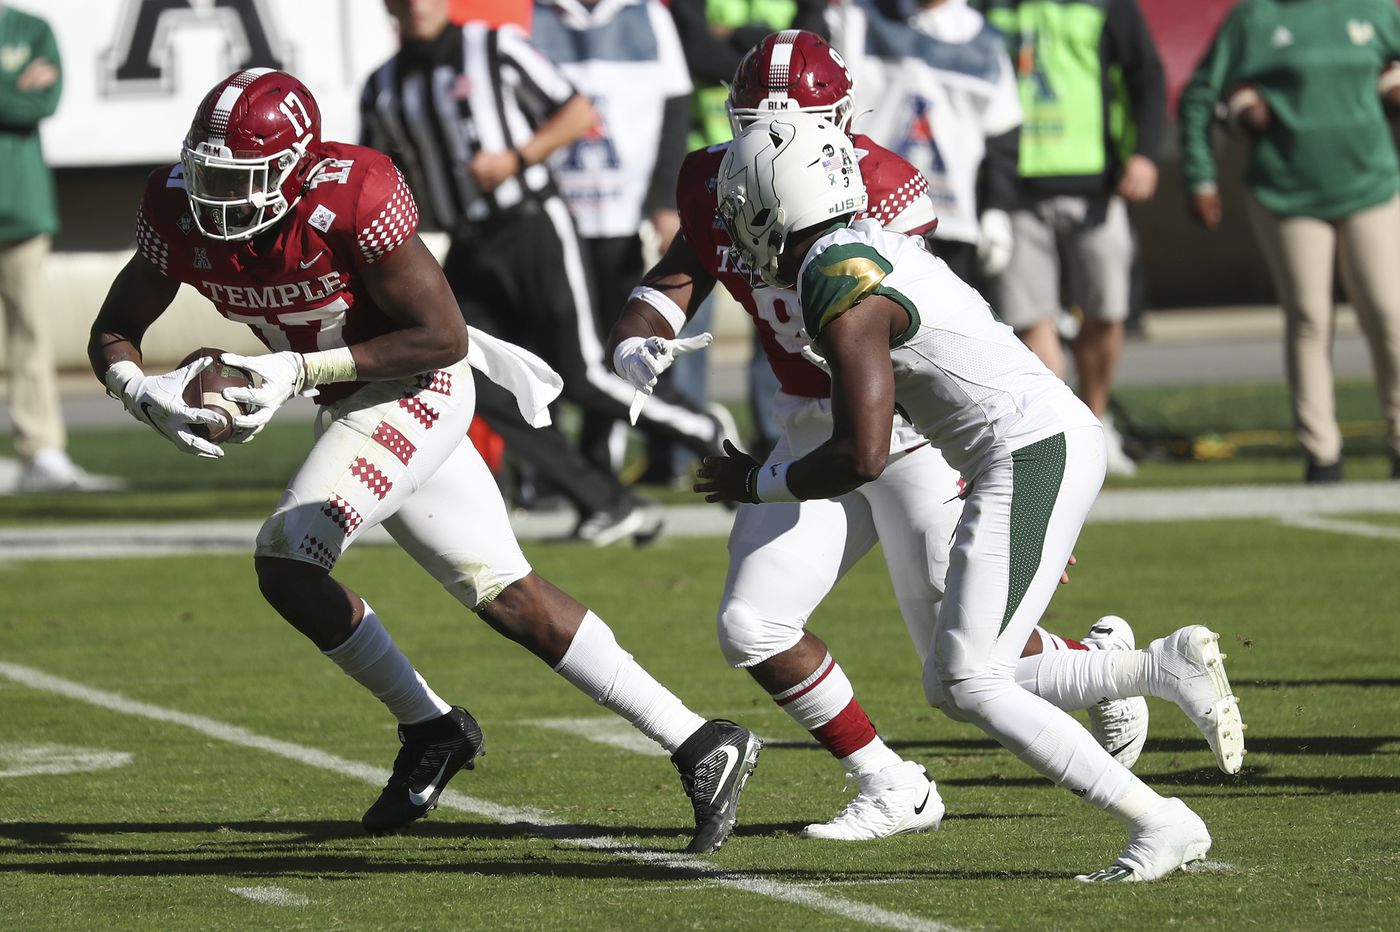 Temple defensive end Arnold Ebiketie is always ready for double duty